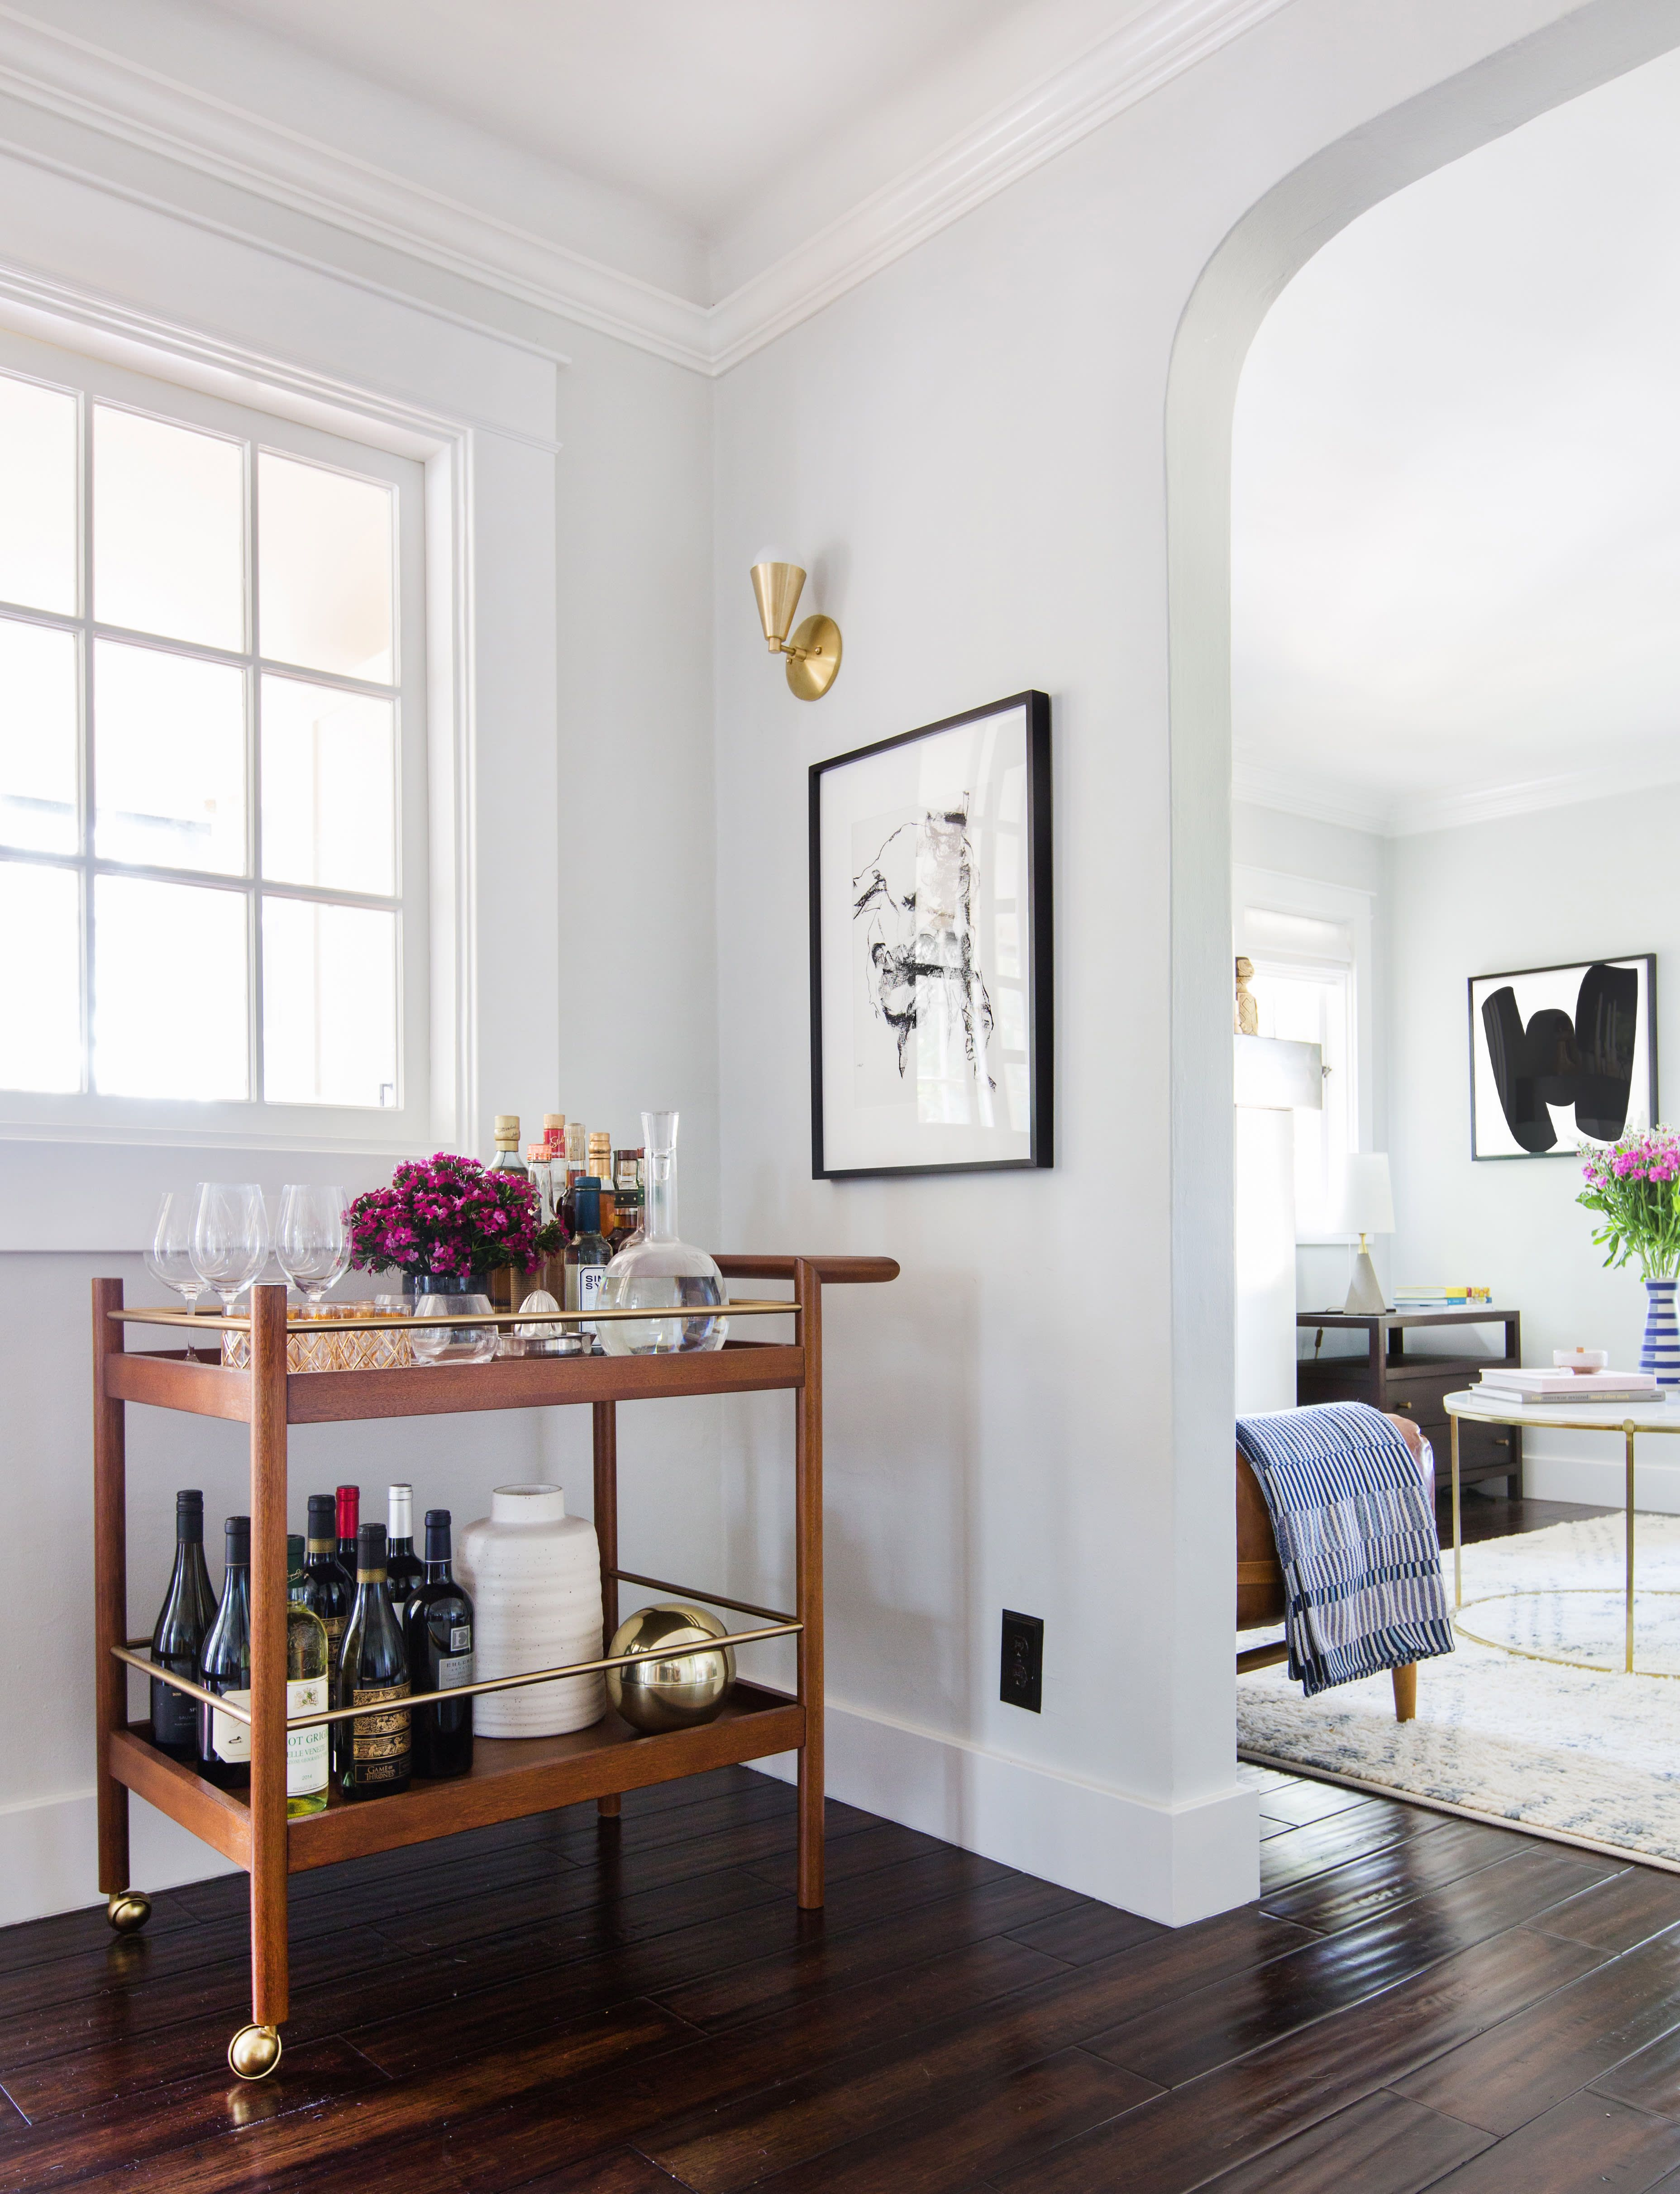 Light Gray Paint Colors Are Trickier to Decorate with Than ...